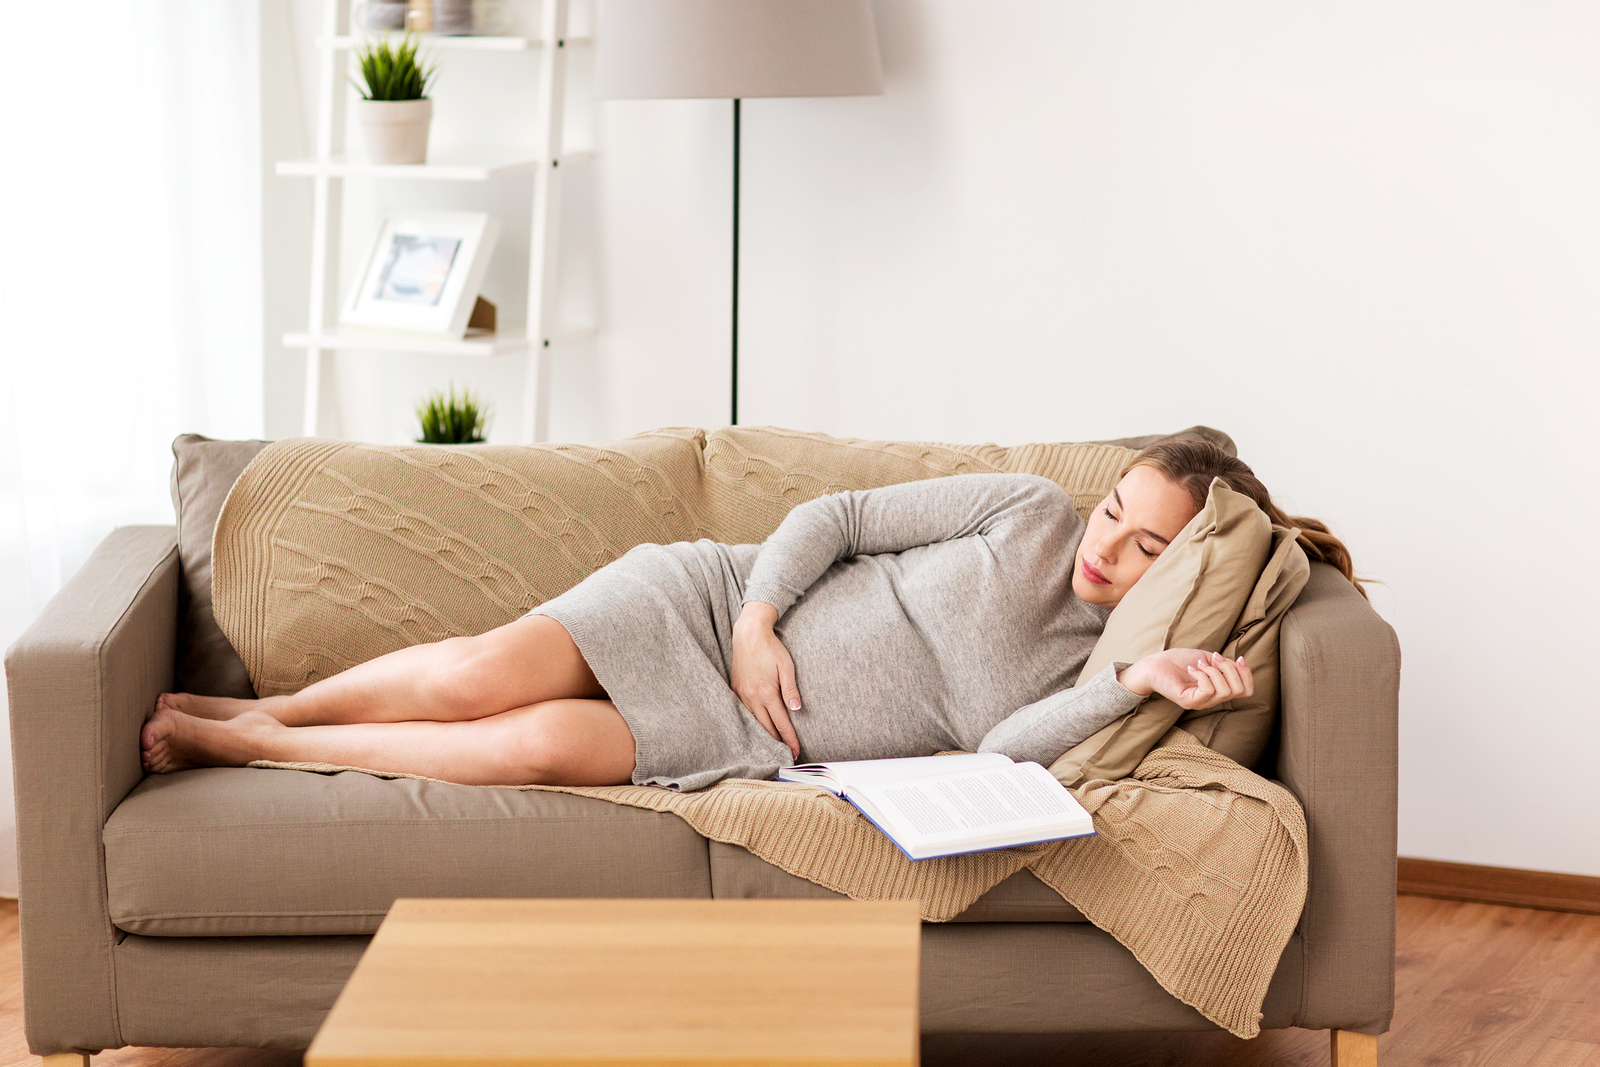 The first trimester brings sickness, total exhaustion, food aversions that make life harder.